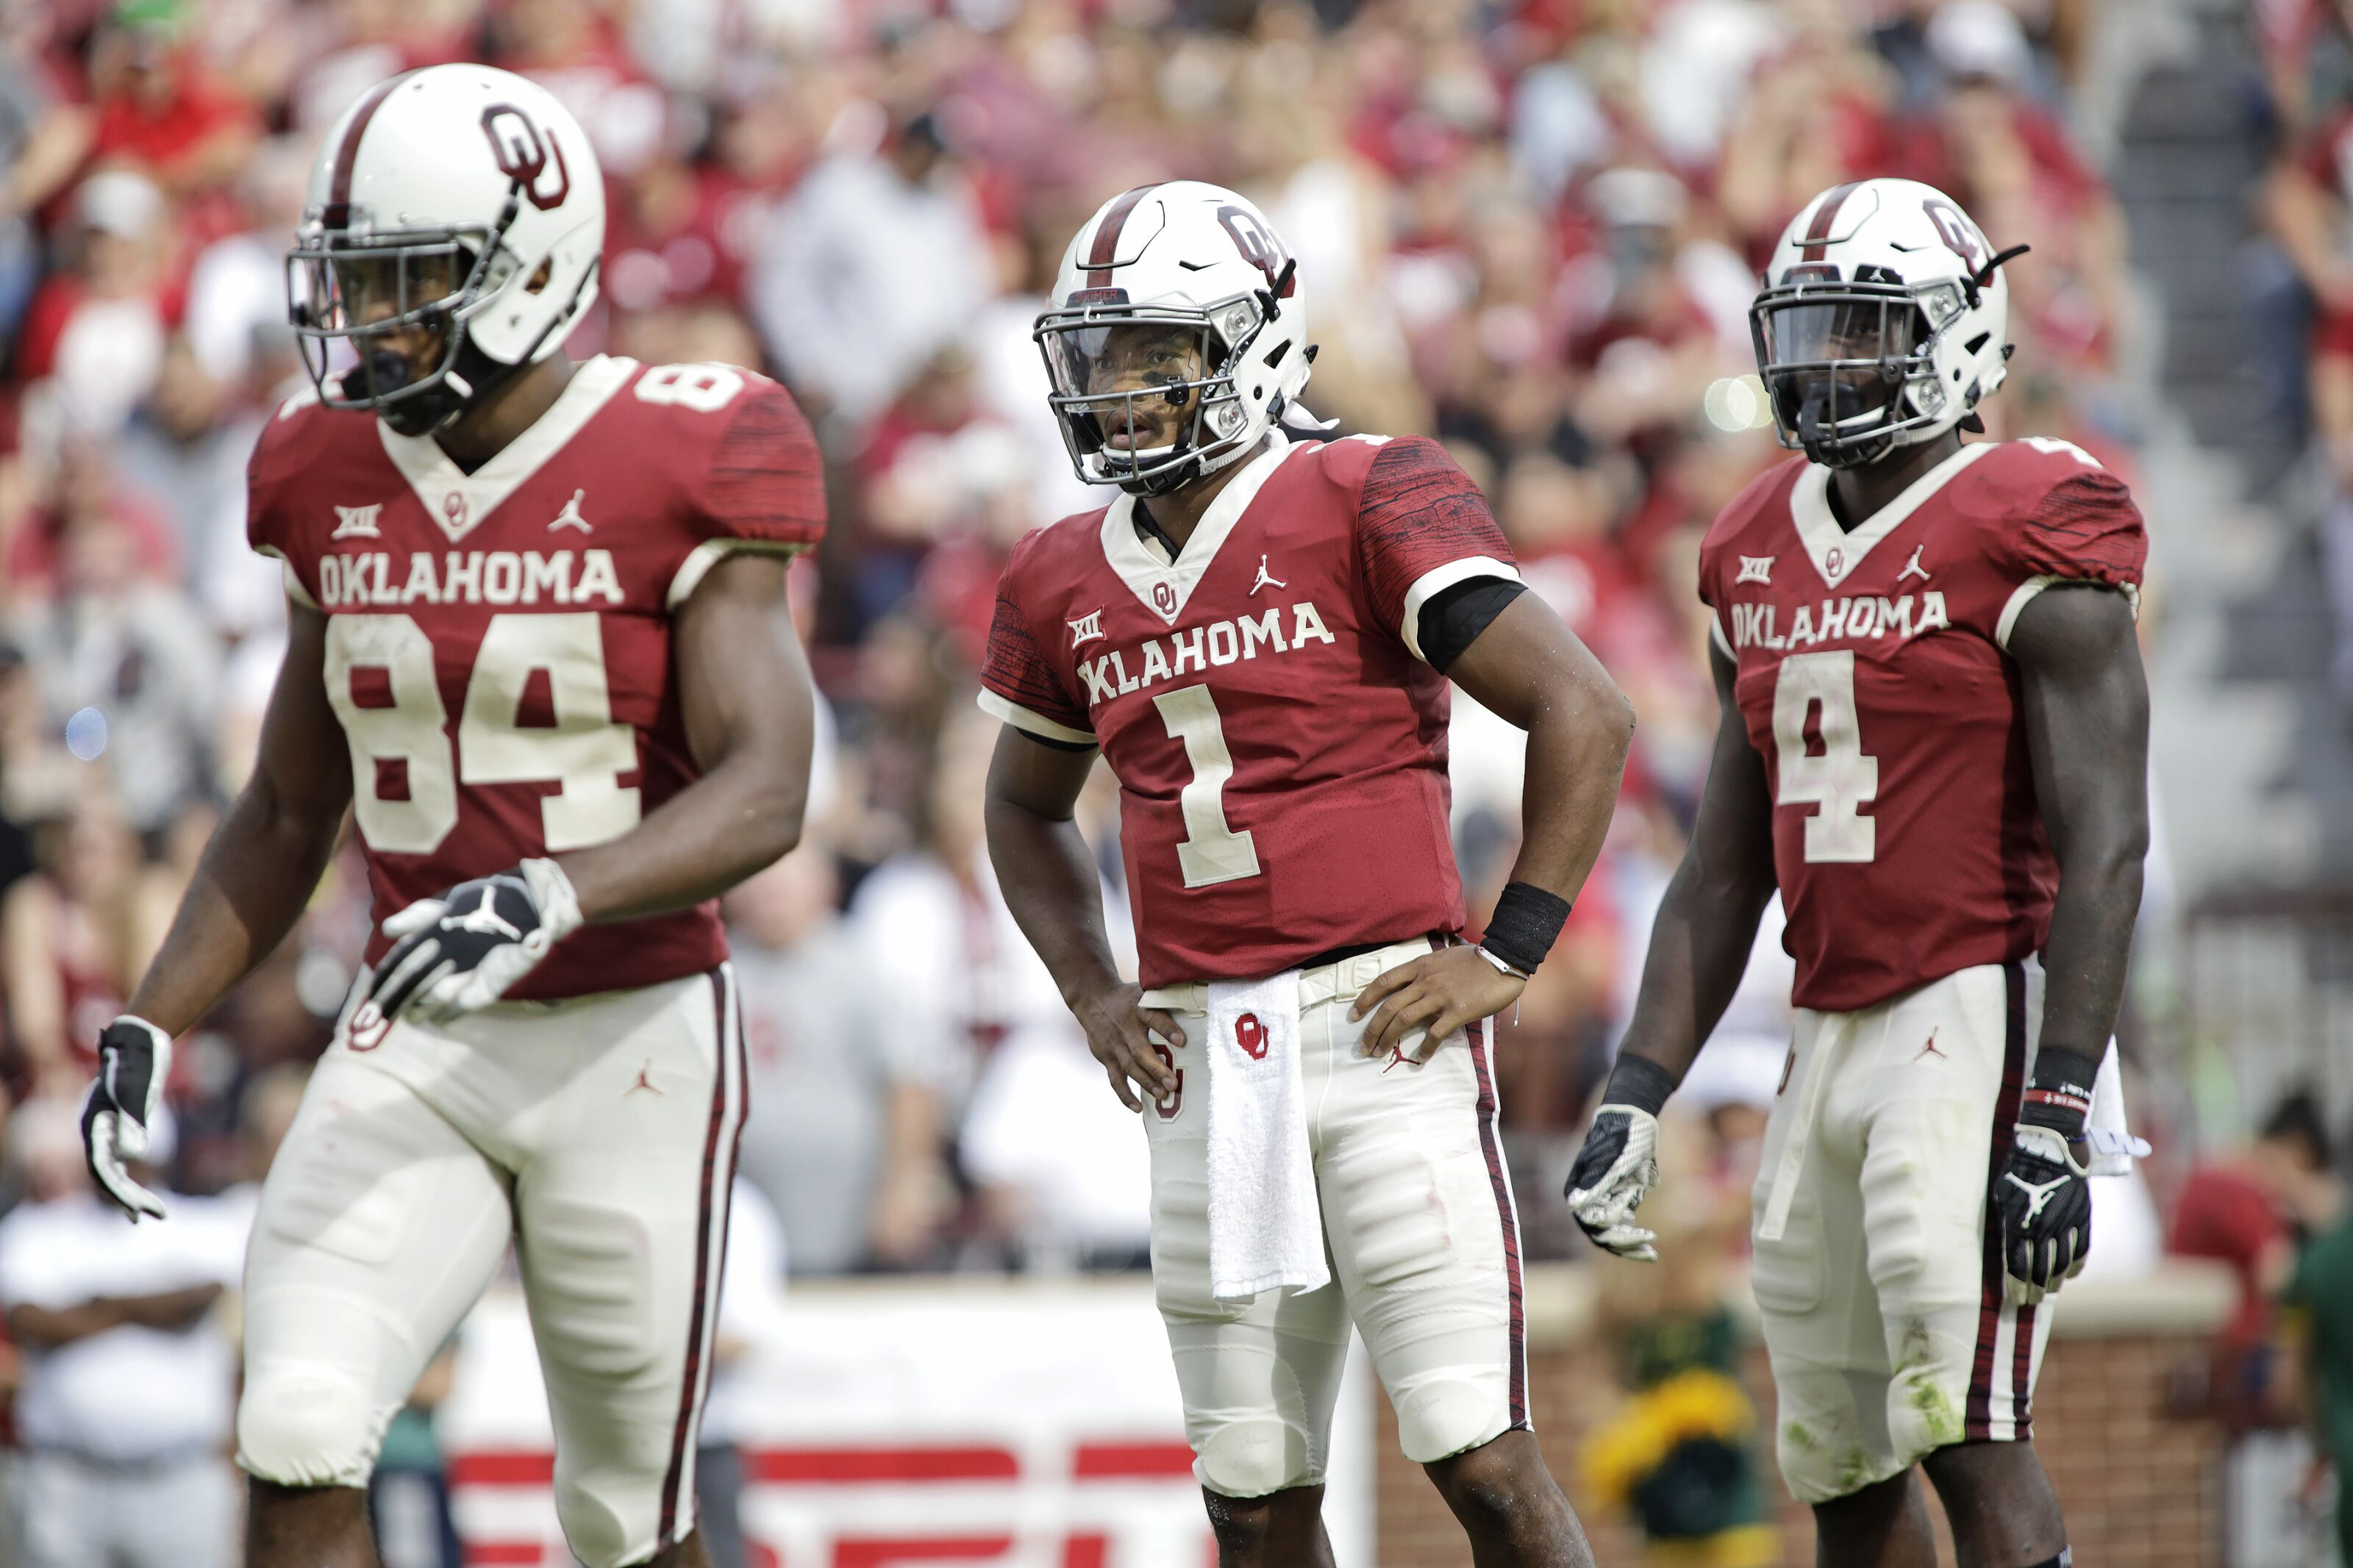 Oklahoma Sooners Qb >> Flipboard: Michaelcollins: No. 9 Oklahoma rebounds from only loss with 52-27 win at TCU